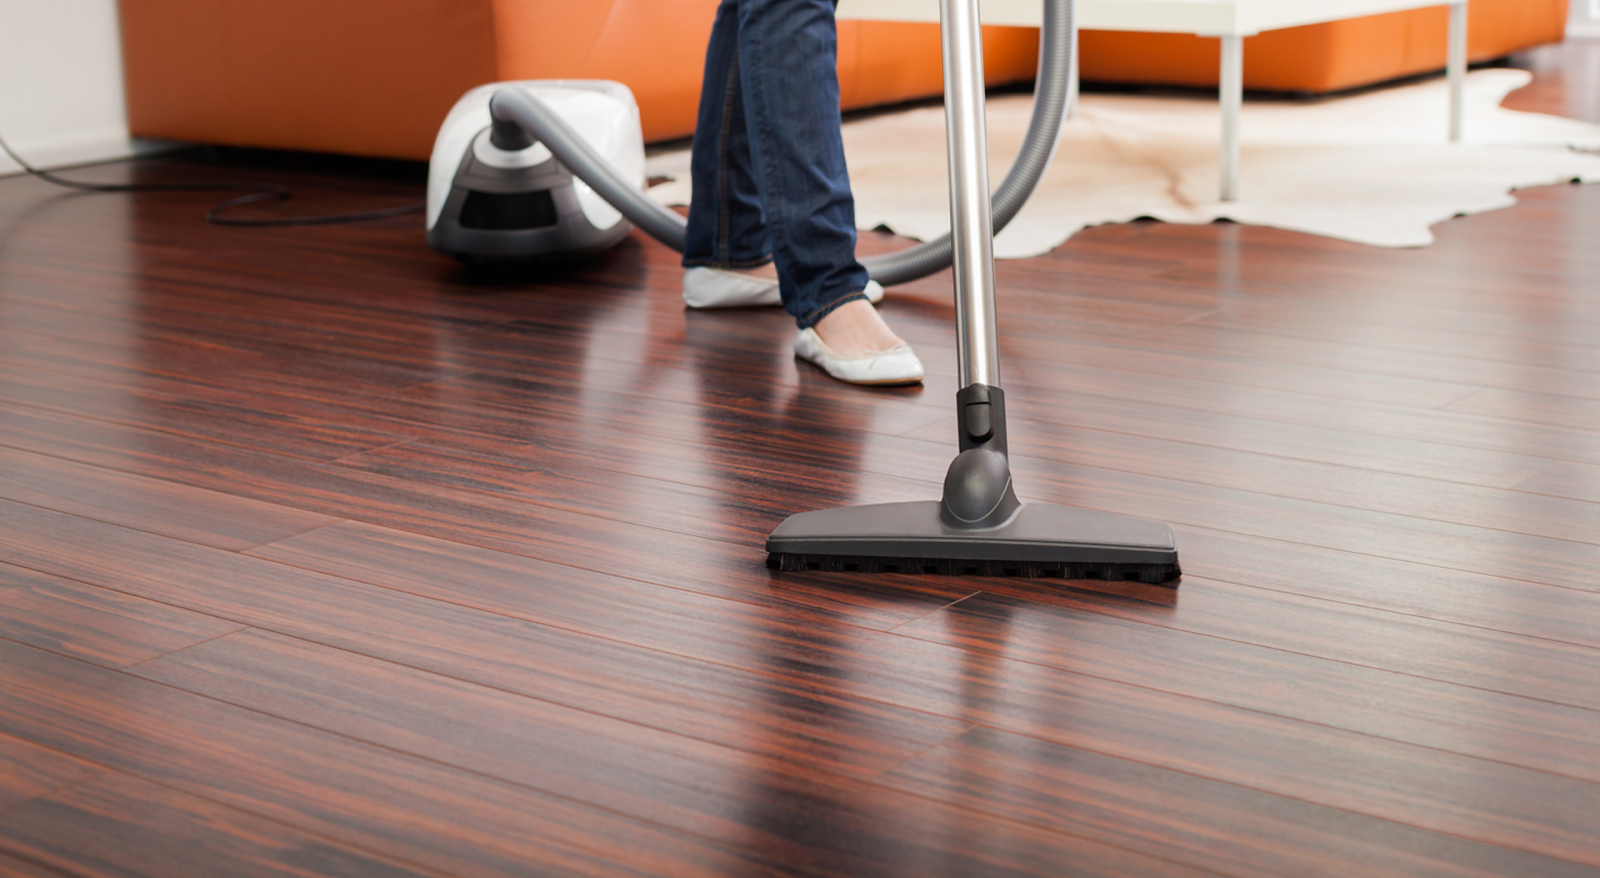 Vacuum cleaners for tile floors